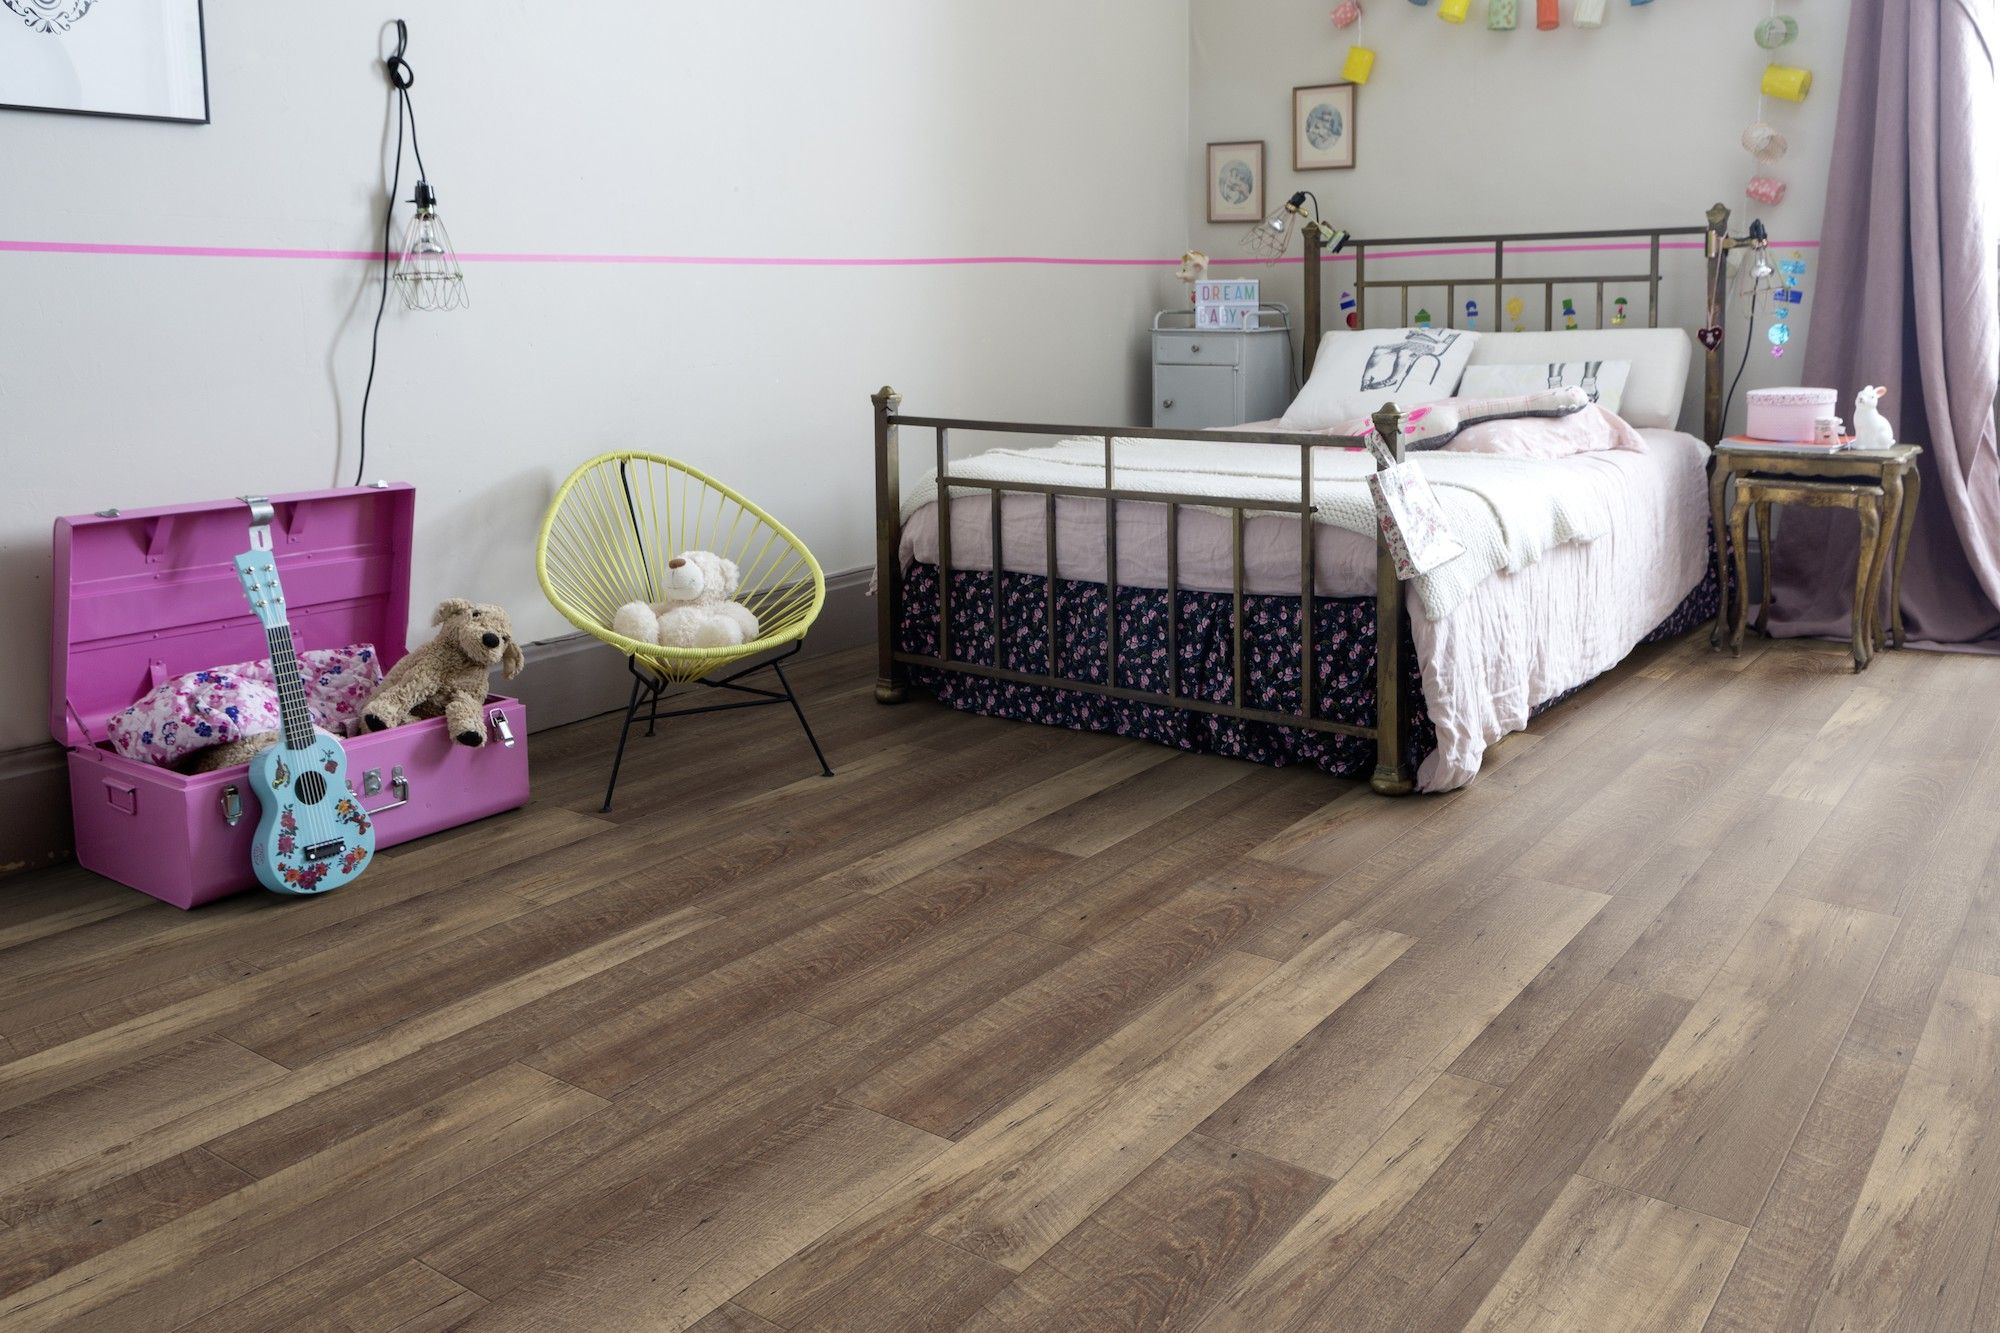 Pasadena Creation 30 By Gerflor Gerflor Flooring Design Www Gerflor Com Carreaux De Vinyle Decoration Interieure Chambre Nature